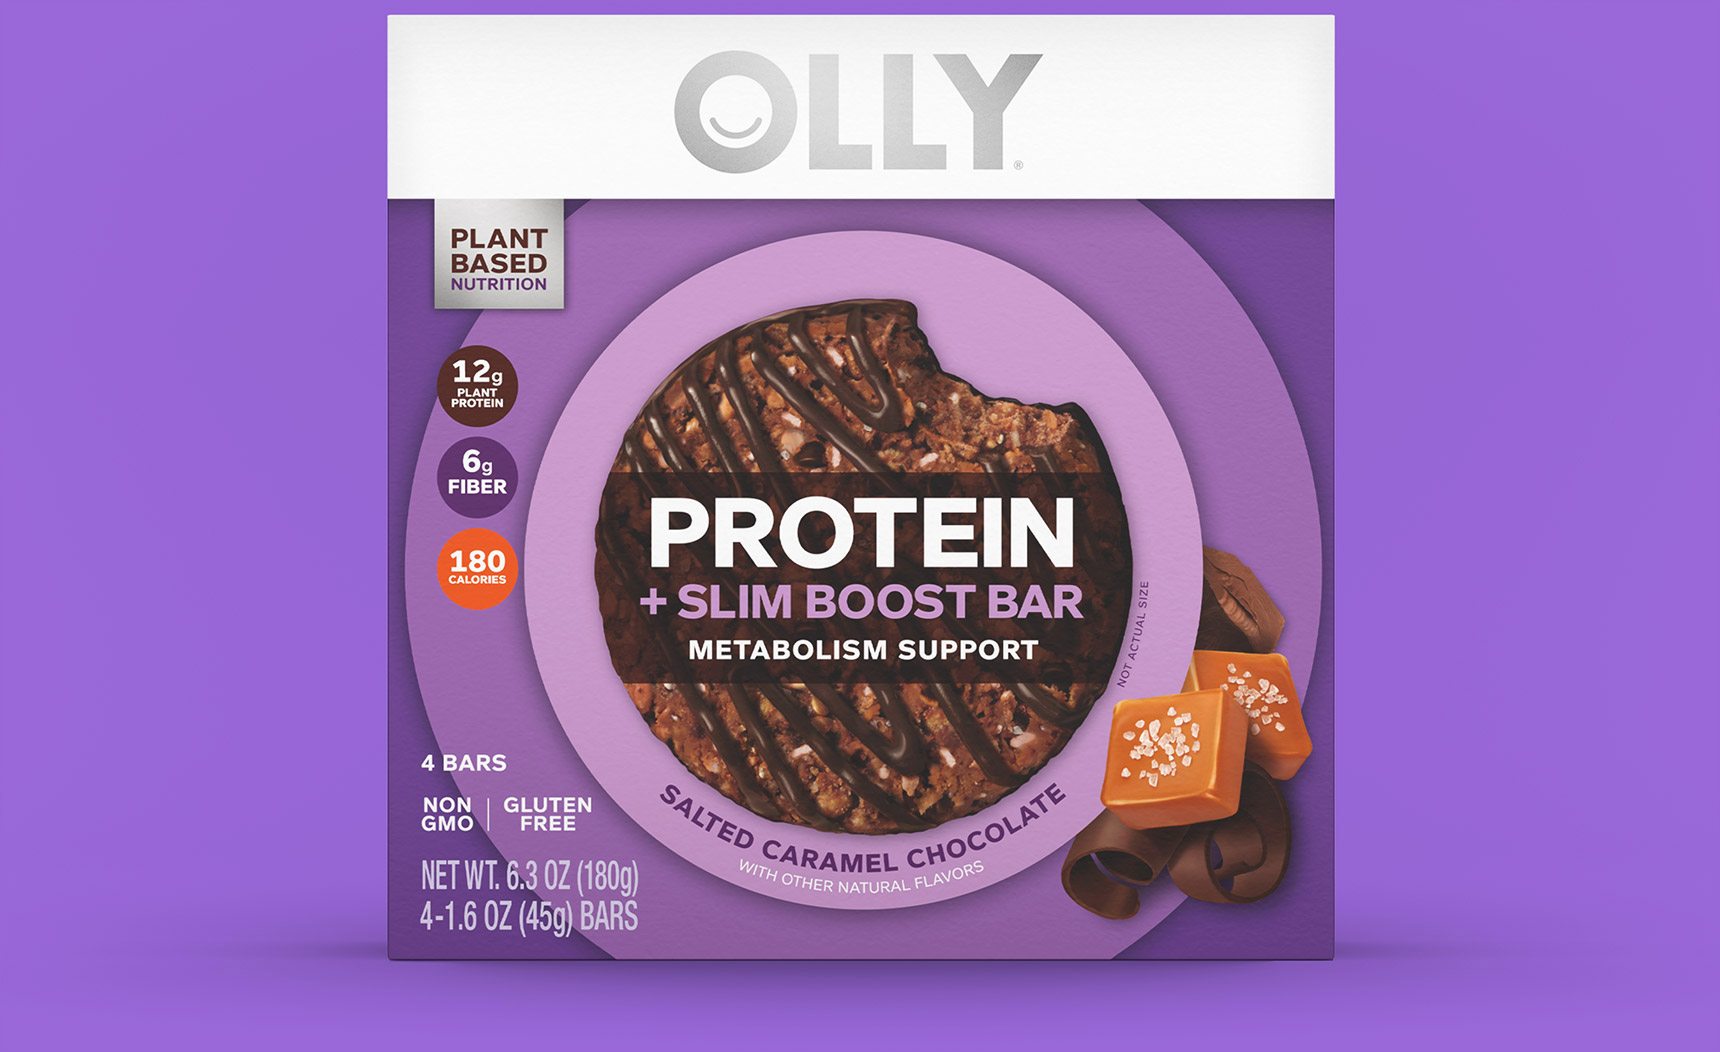 https://www.olly.com/products/protein-slim-boost-2/Protein + Slim Boost Bar